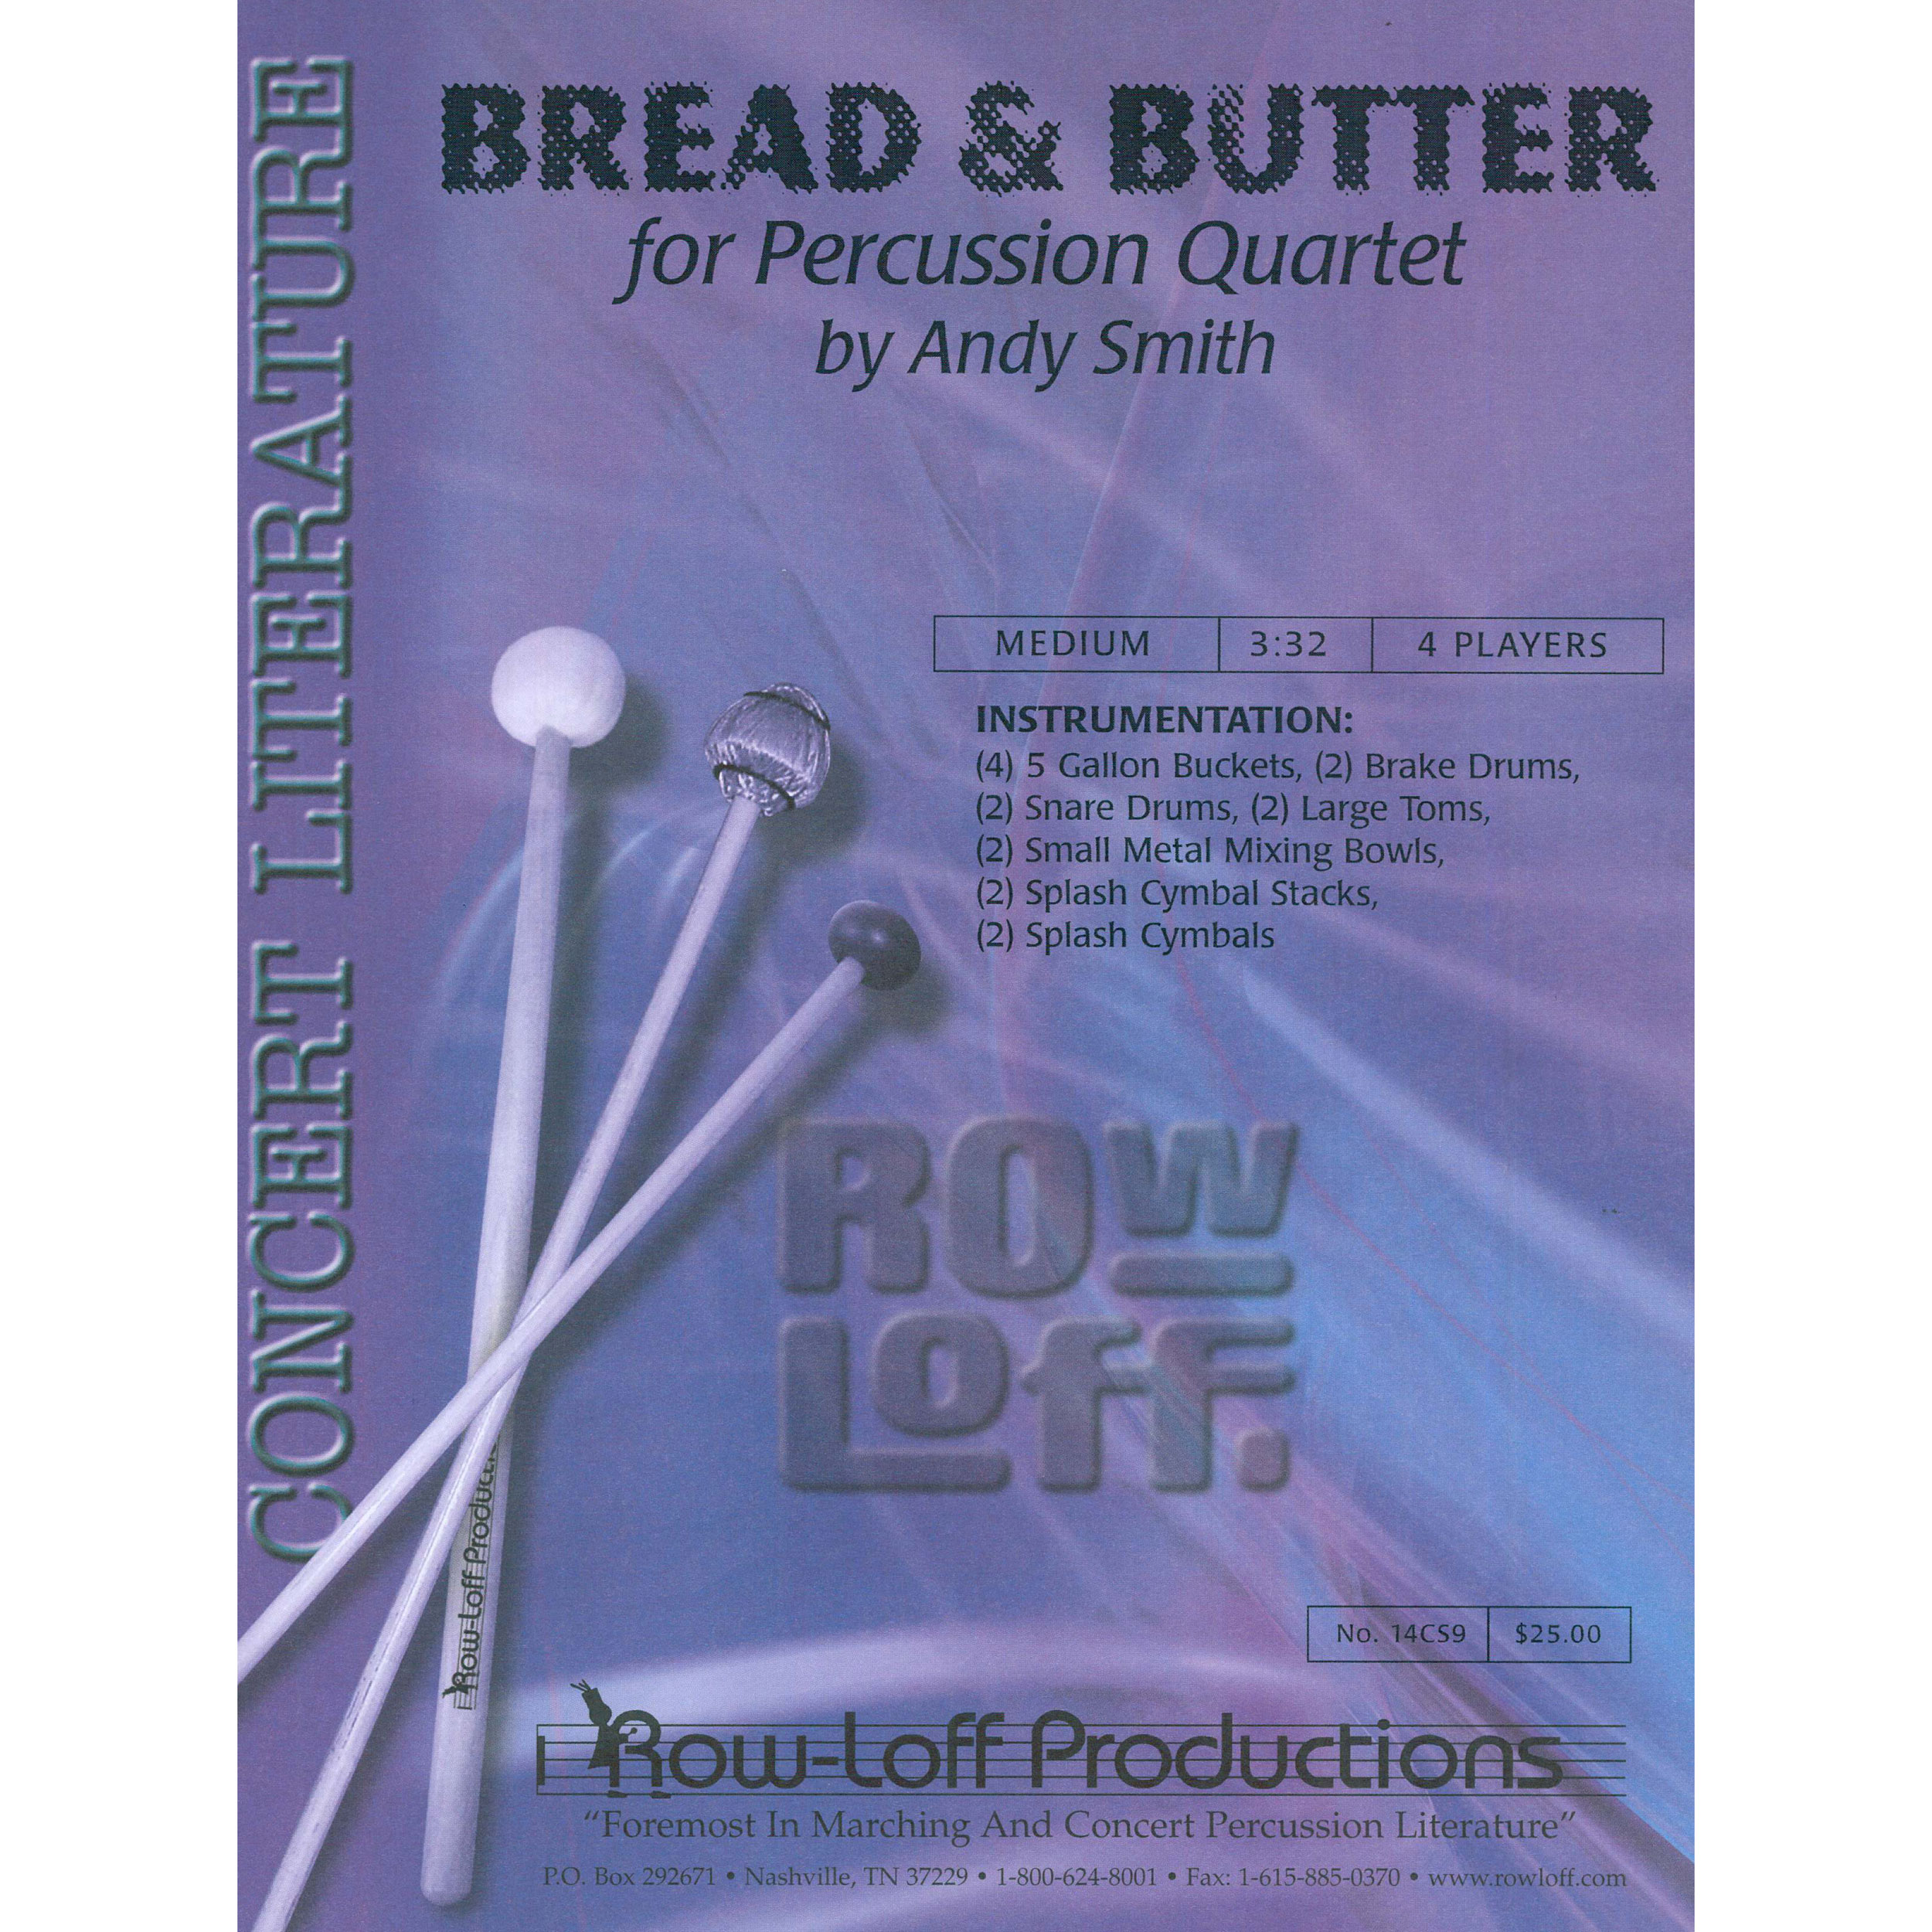 Bread & Butter by Andy Smith